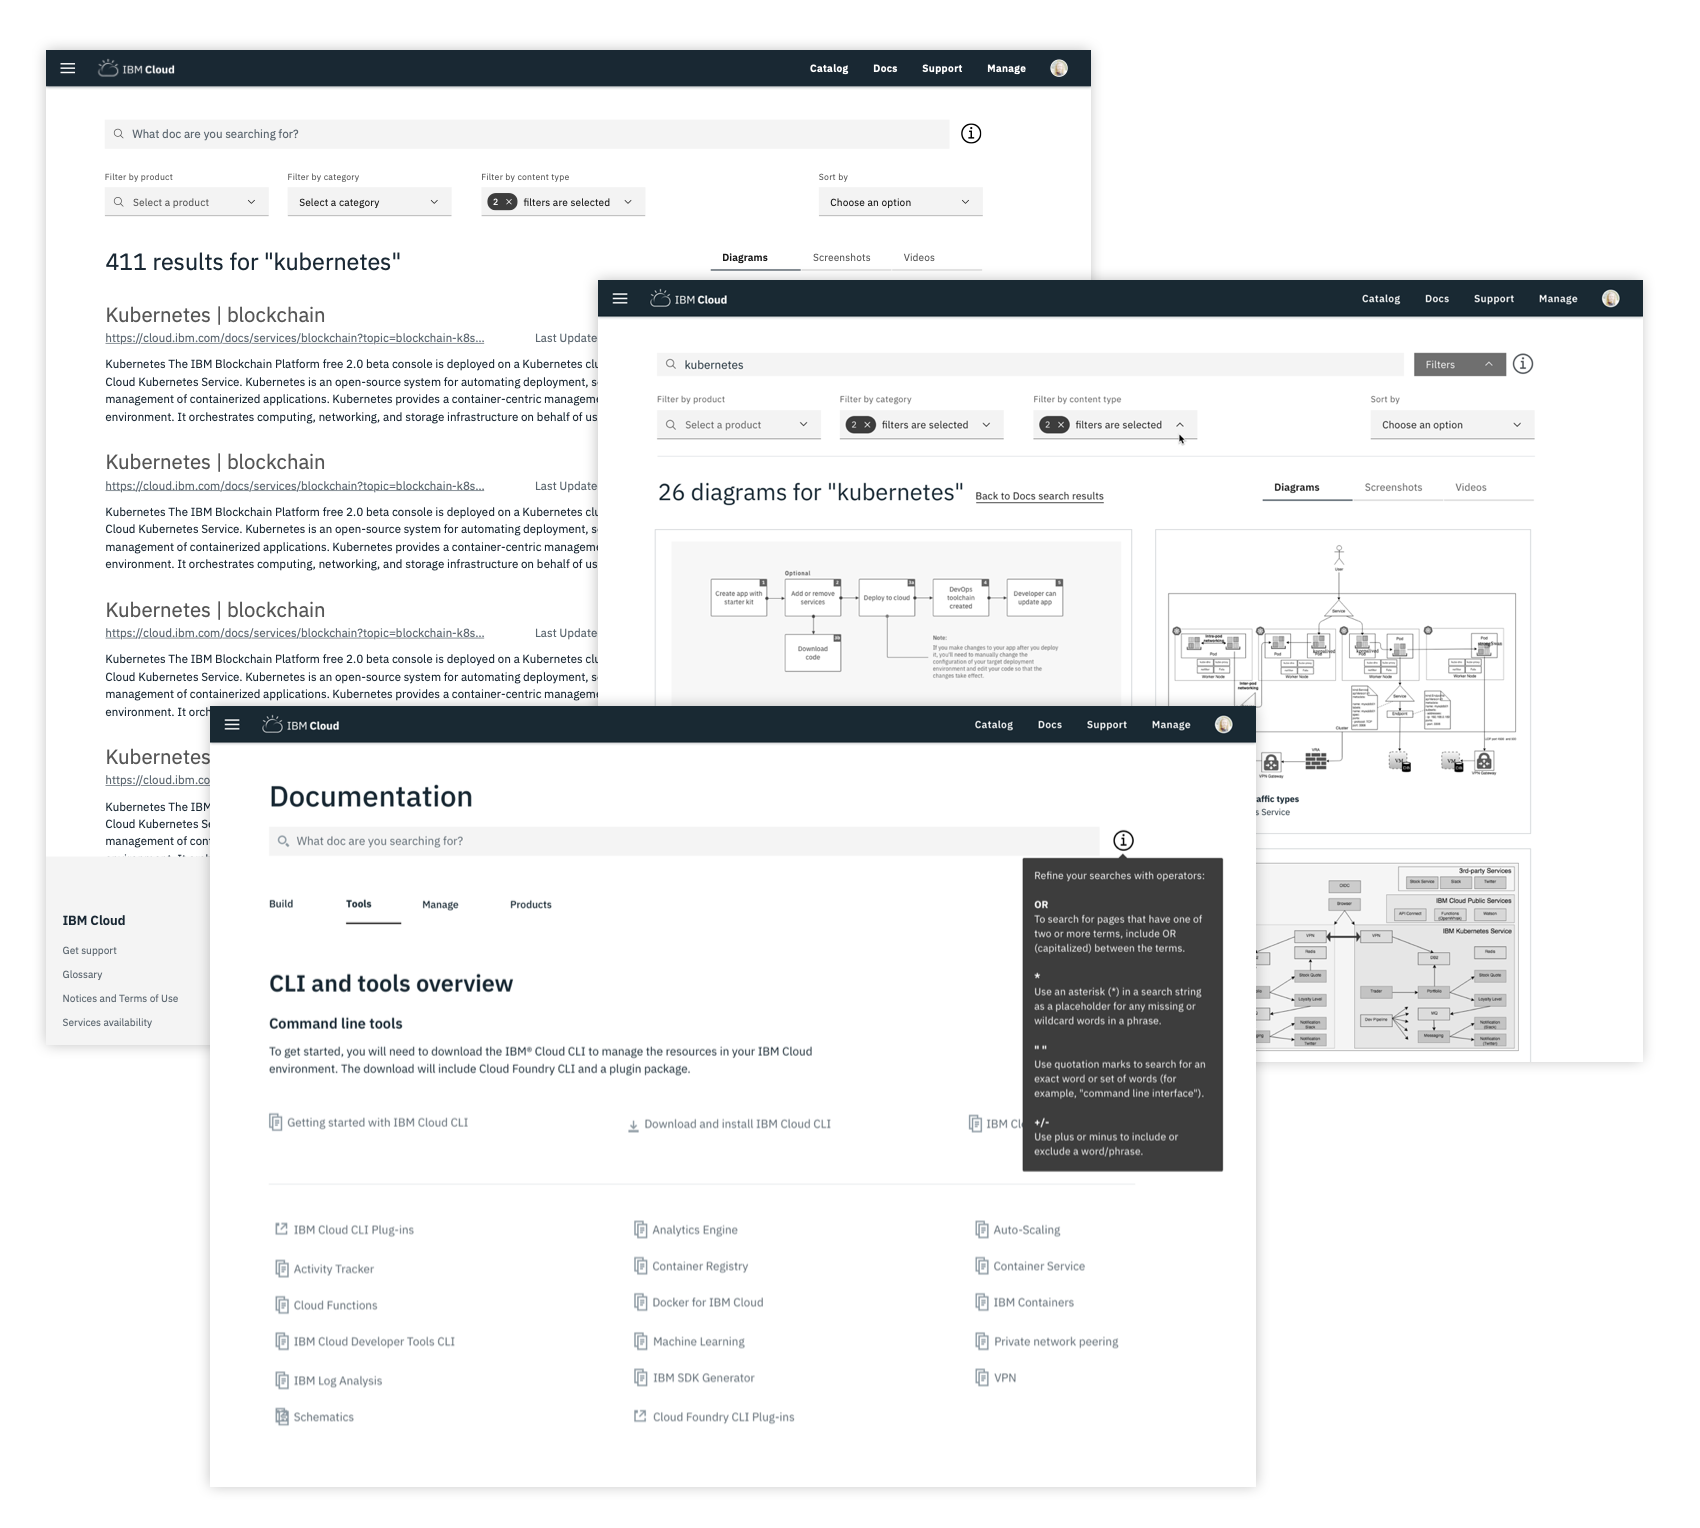 Guided Search for IBM Cloud Documentation